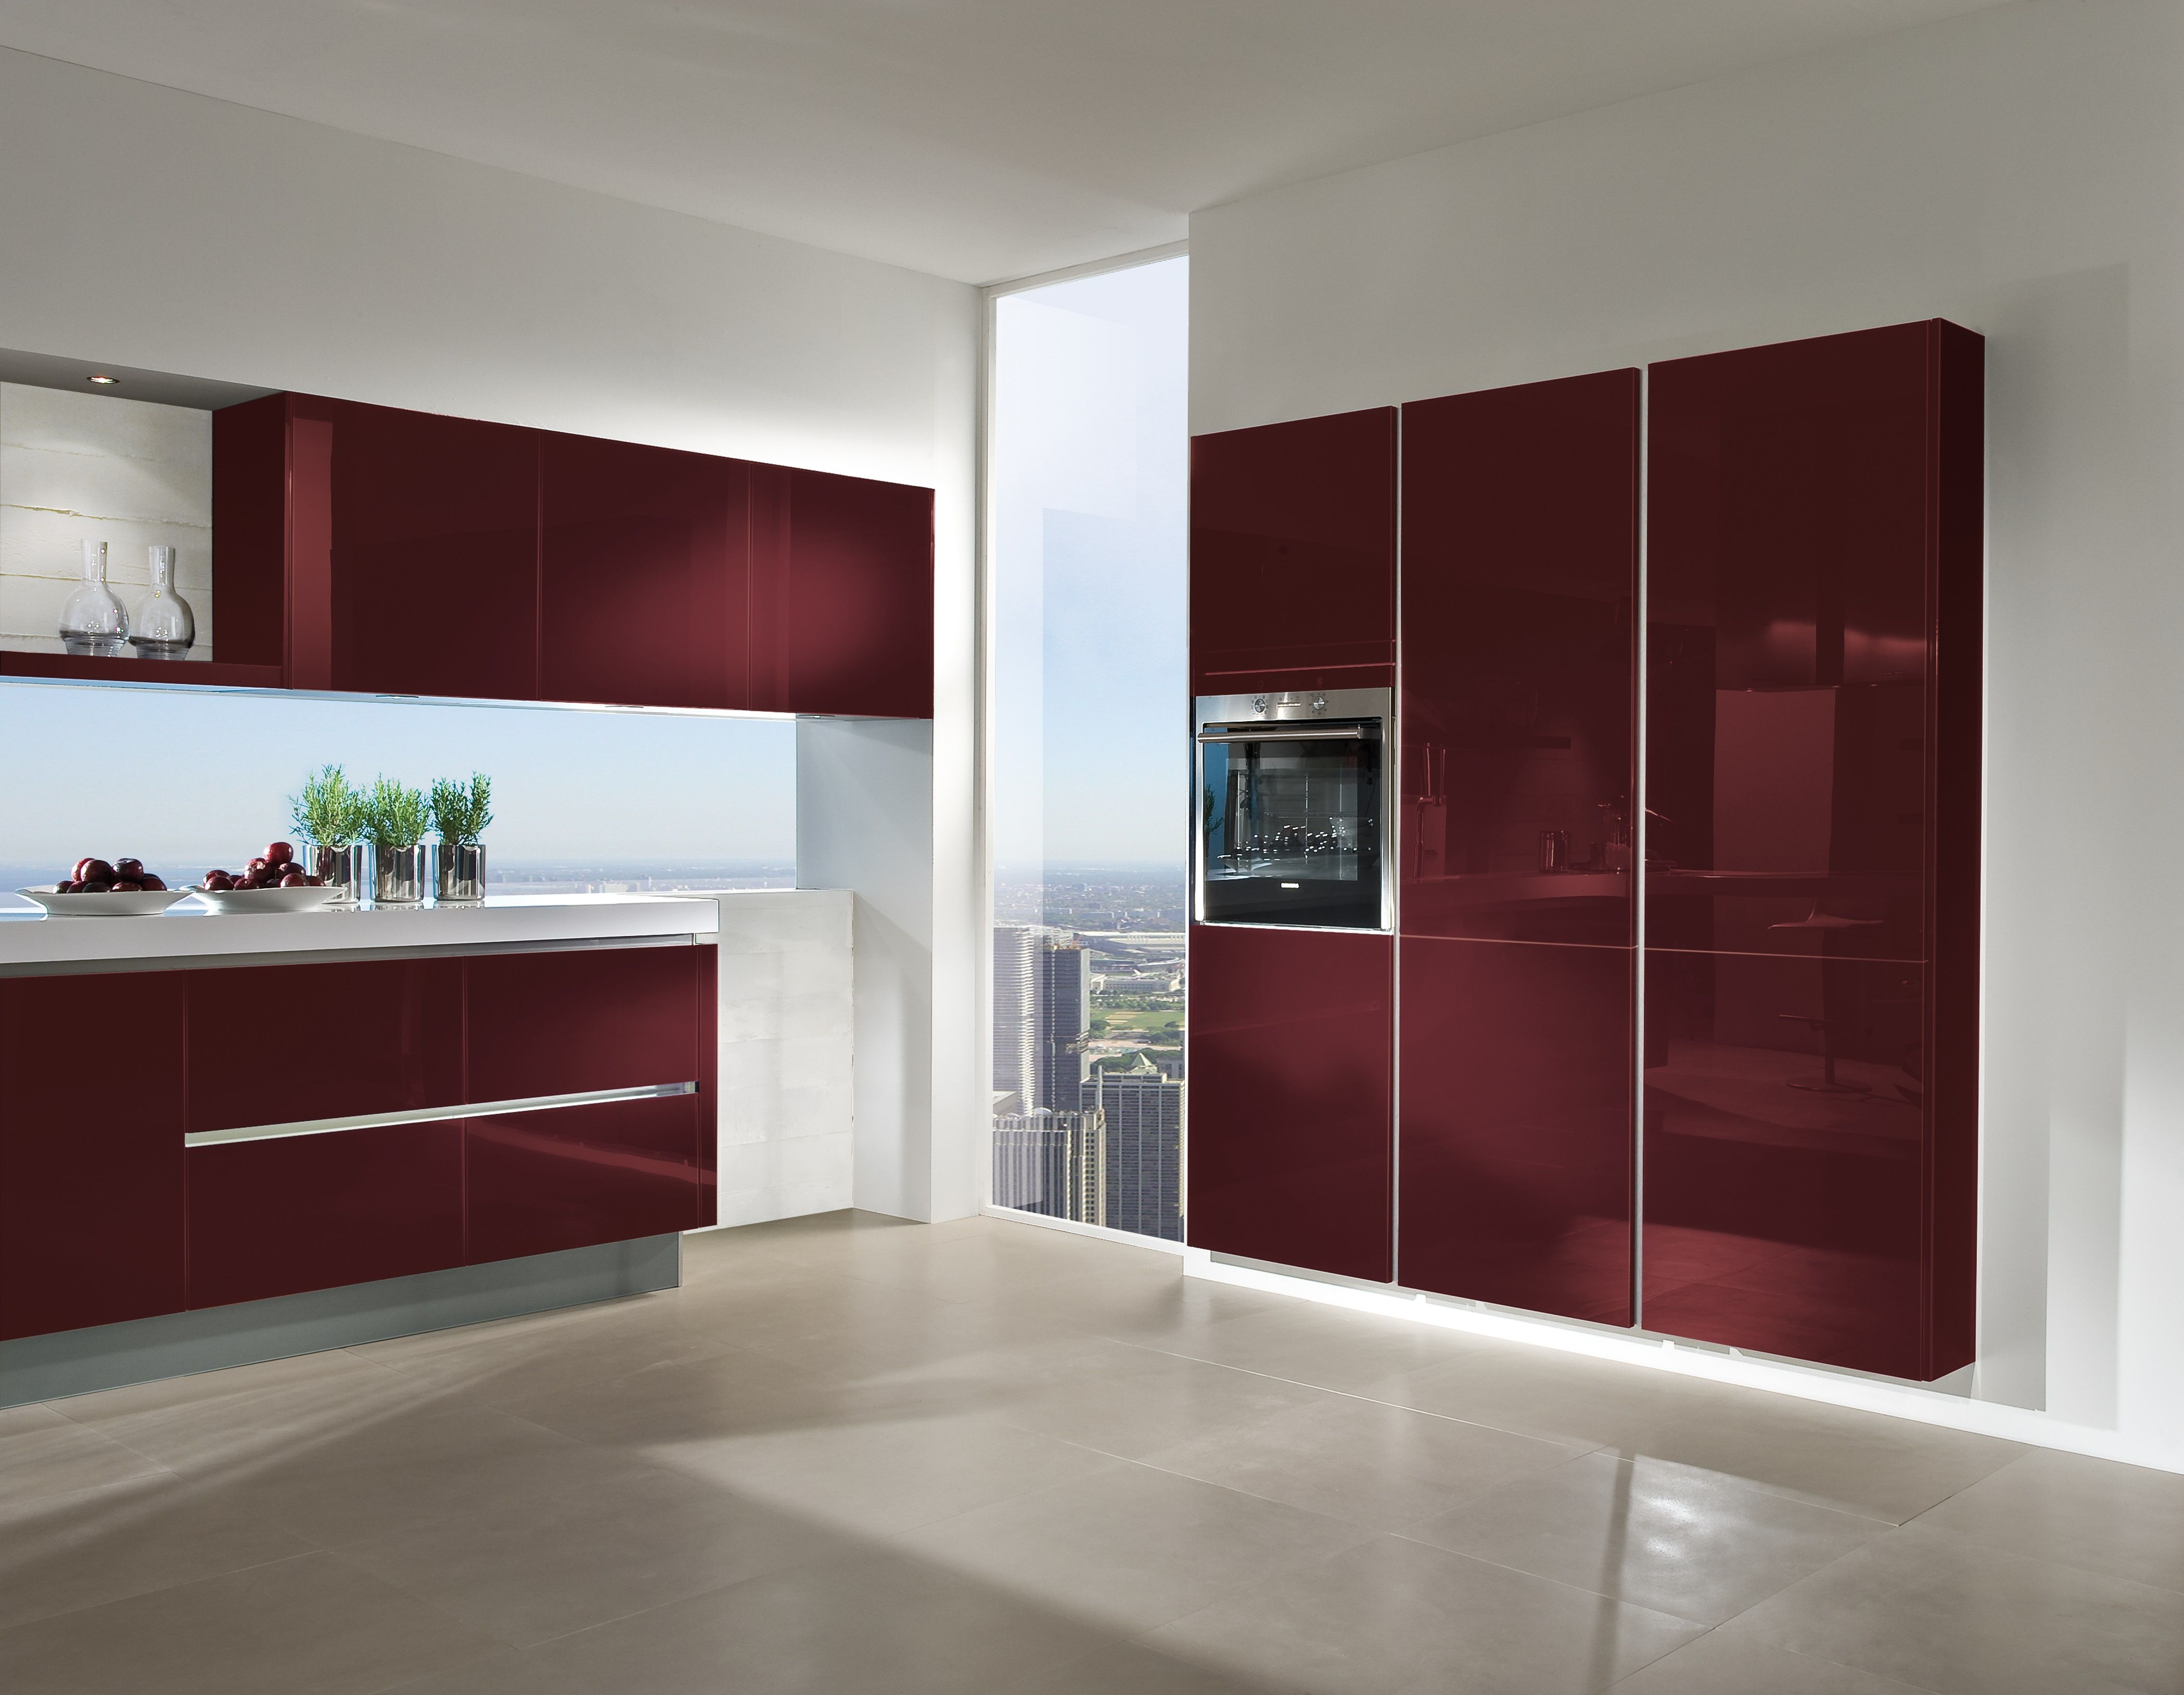 Add A Splash Of Vibrant Colour With The 4030 Gl In Wine Red High Gloss Lacquer This Handleless Design Red Kitchen Cabinets Red Kitchen Red Kitchen Curtains